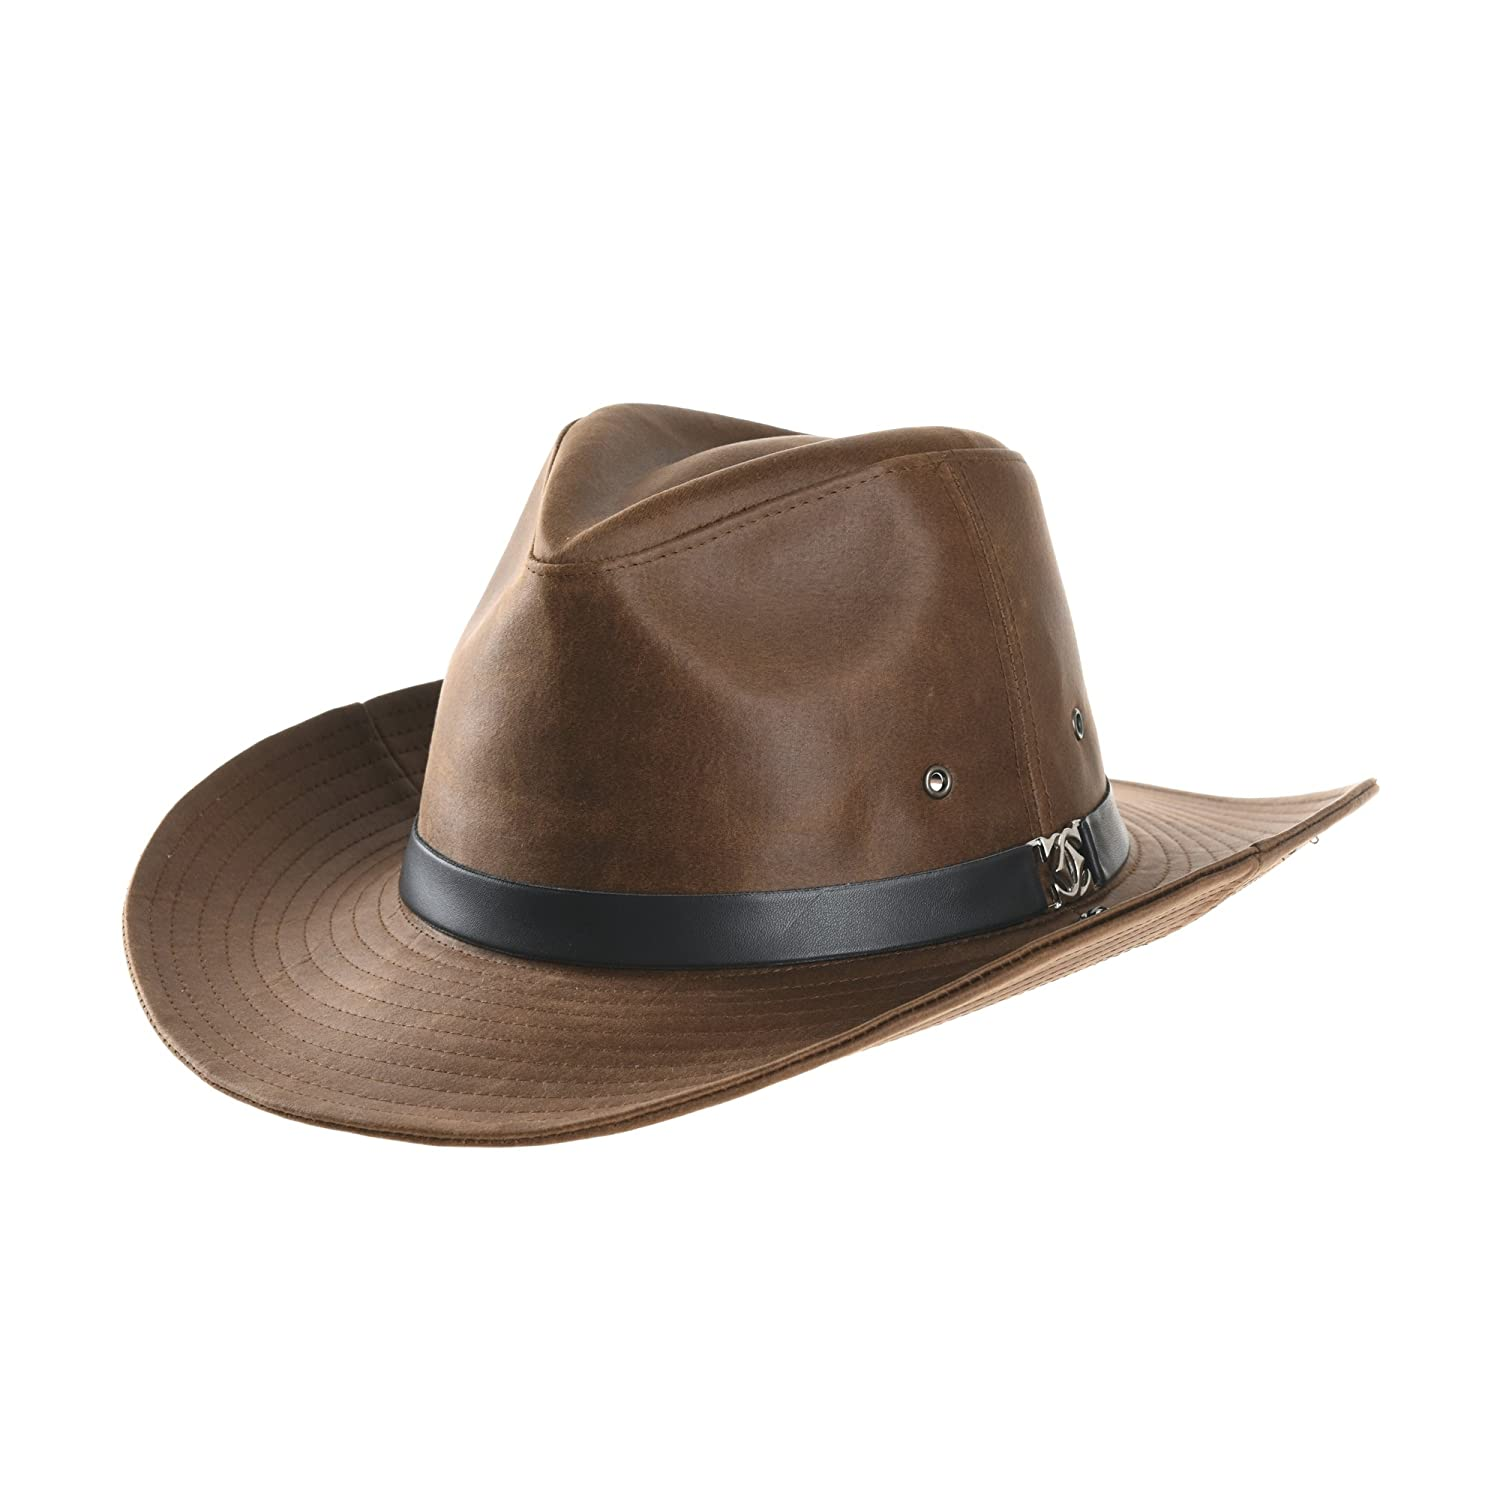 WITHMOONS Faux Leather Indiana Jones Hat Outback Hat Fedora CD8859 (Black)  at Amazon Men s Clothing store  9abc93c560e